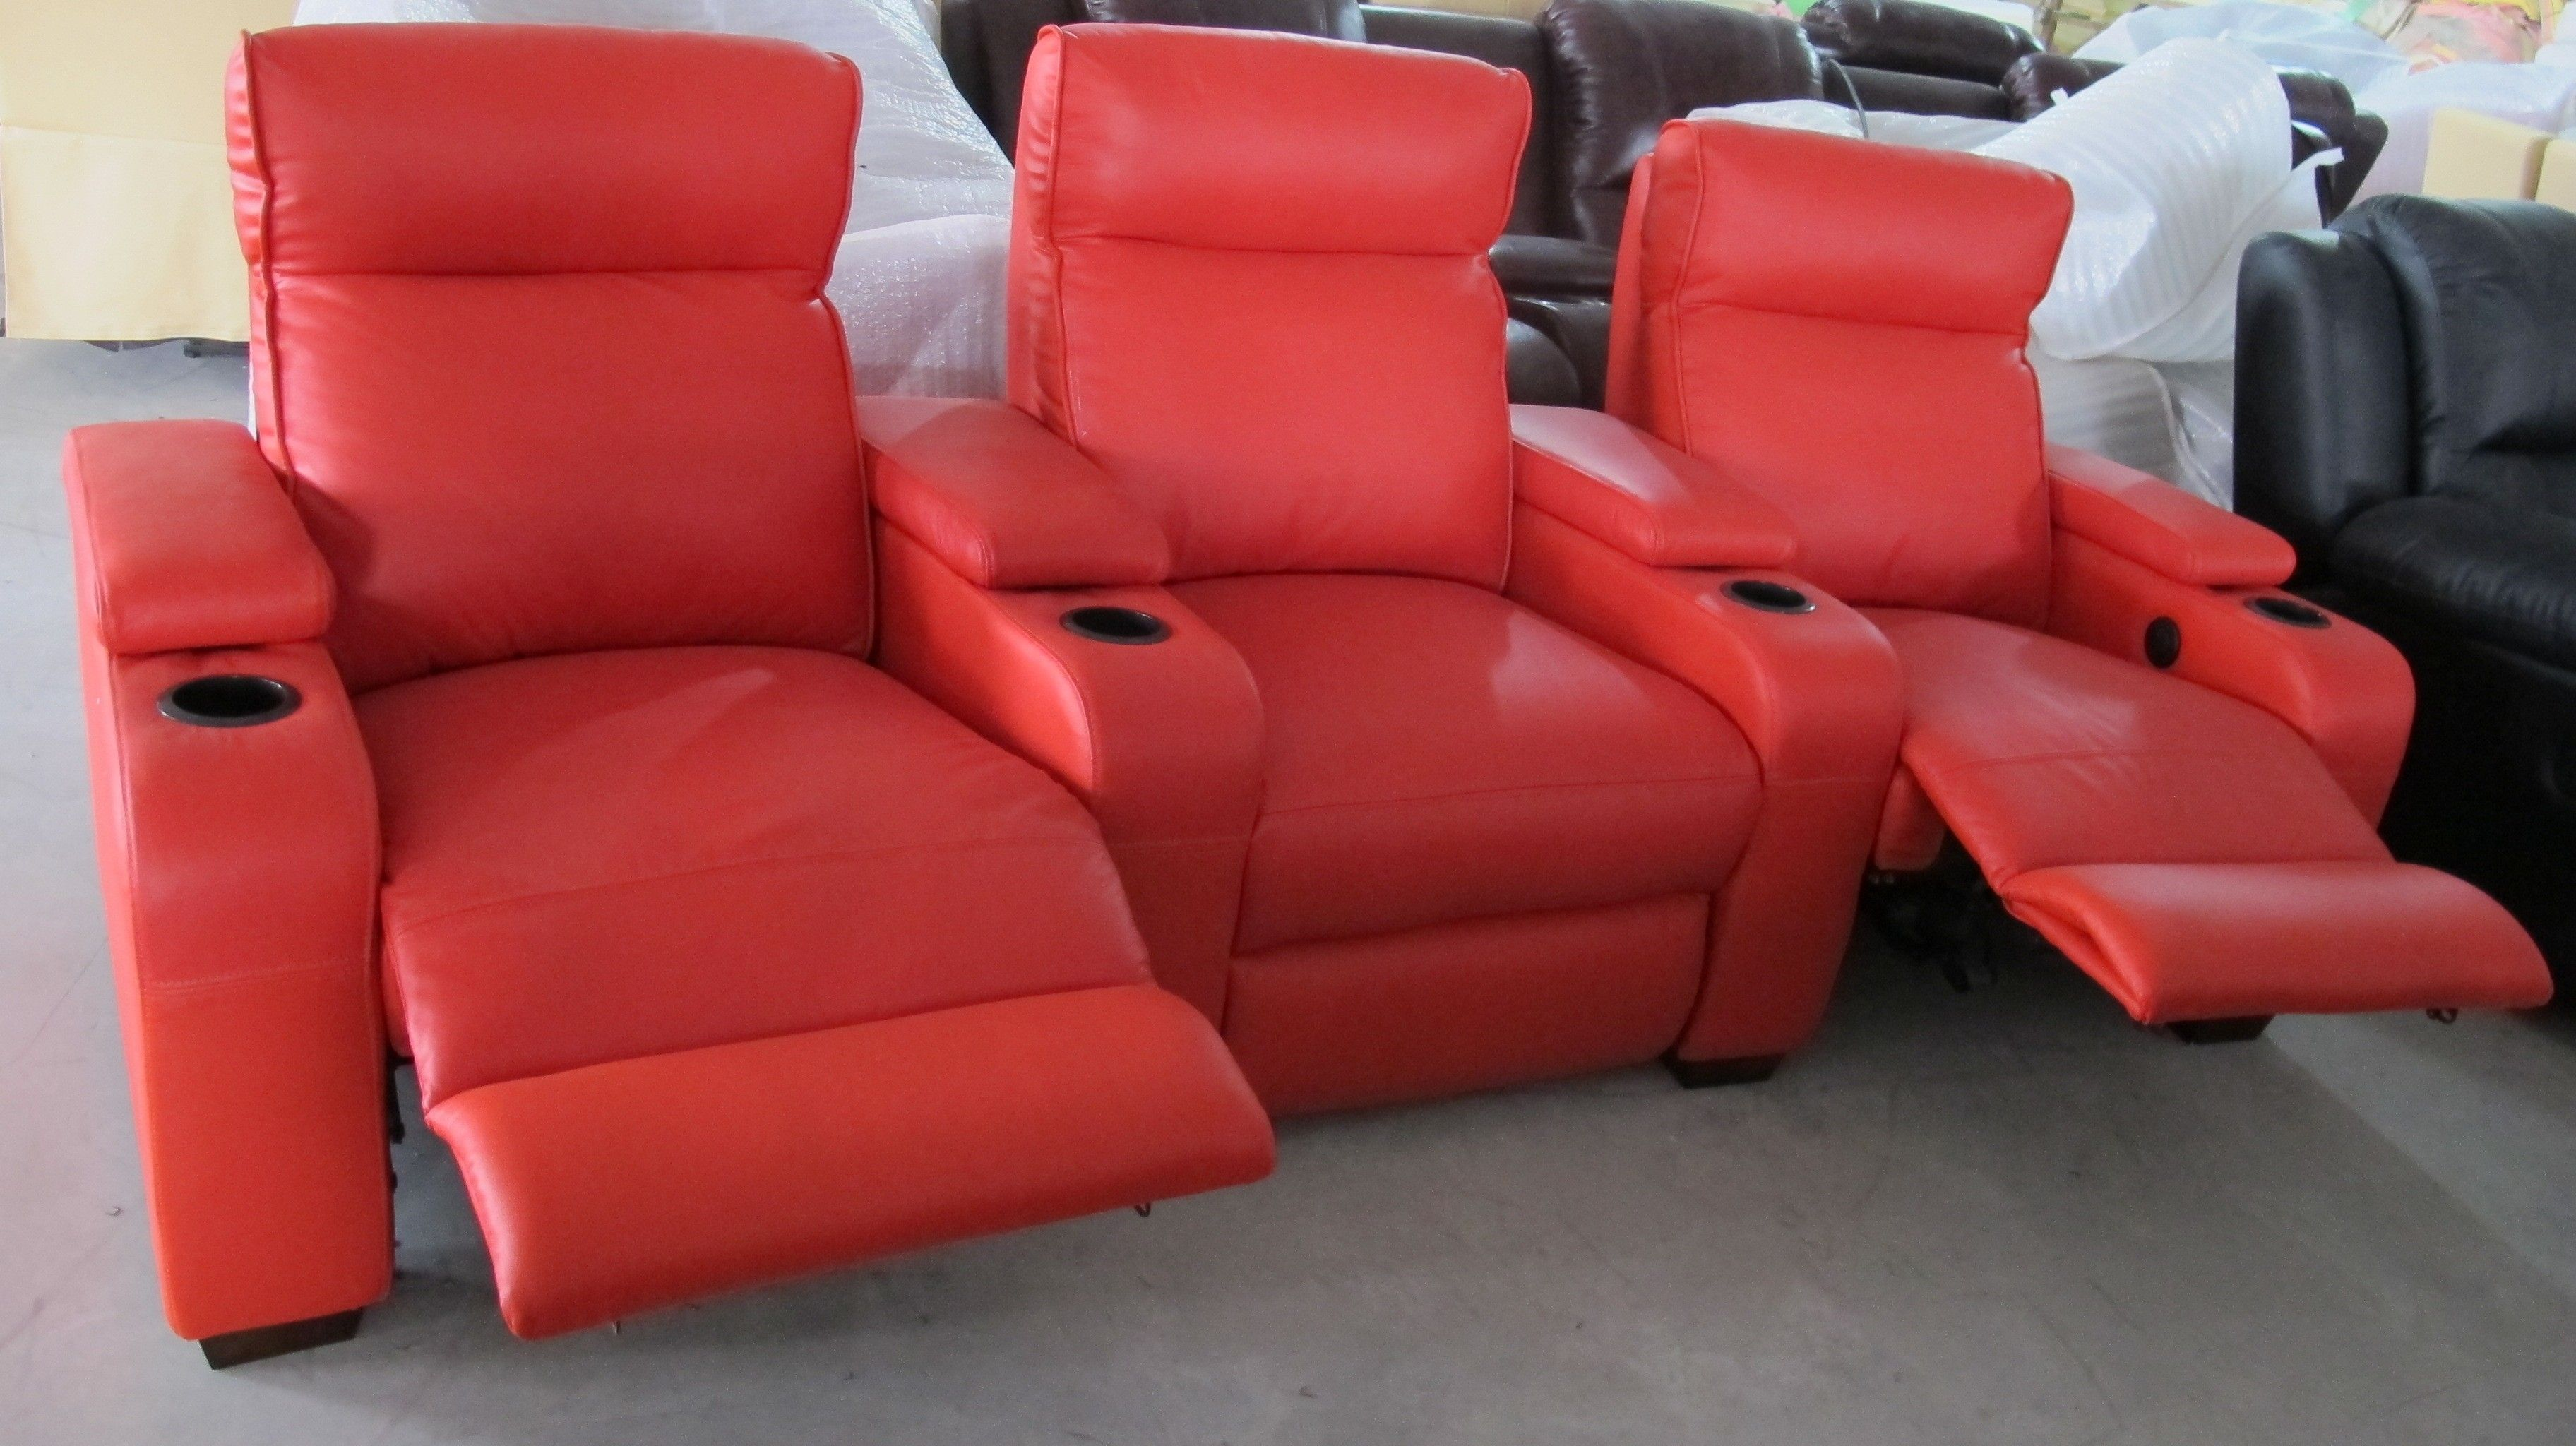 Delicieux Furniture Living Room Exotic Three Pieces Red Leather Recliner Sofa Lazy Boy  Leather Sofa